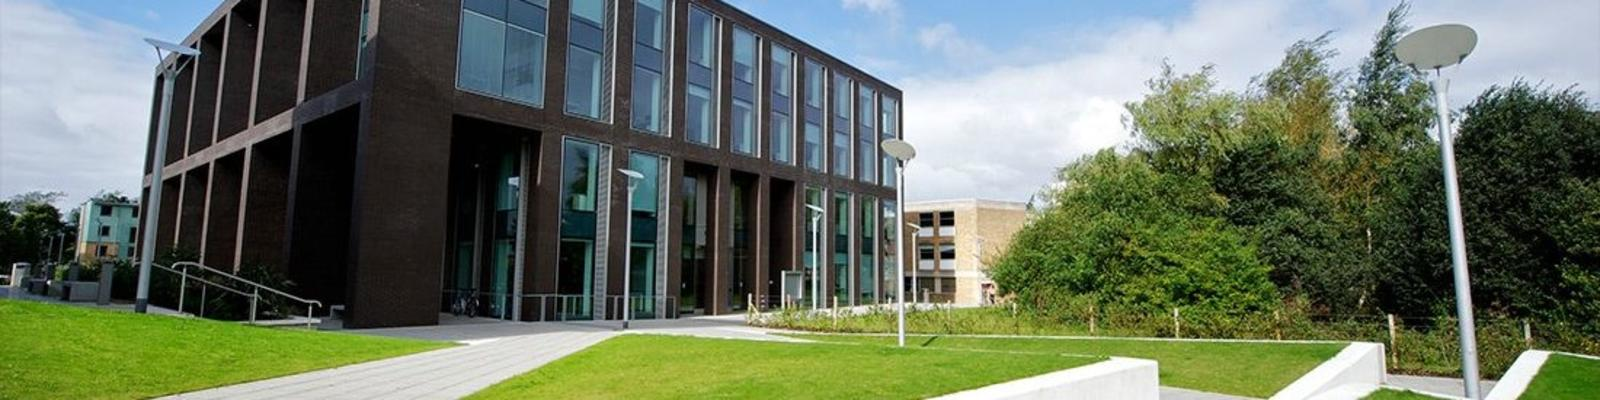 Modern buildings on Lancaster University campus